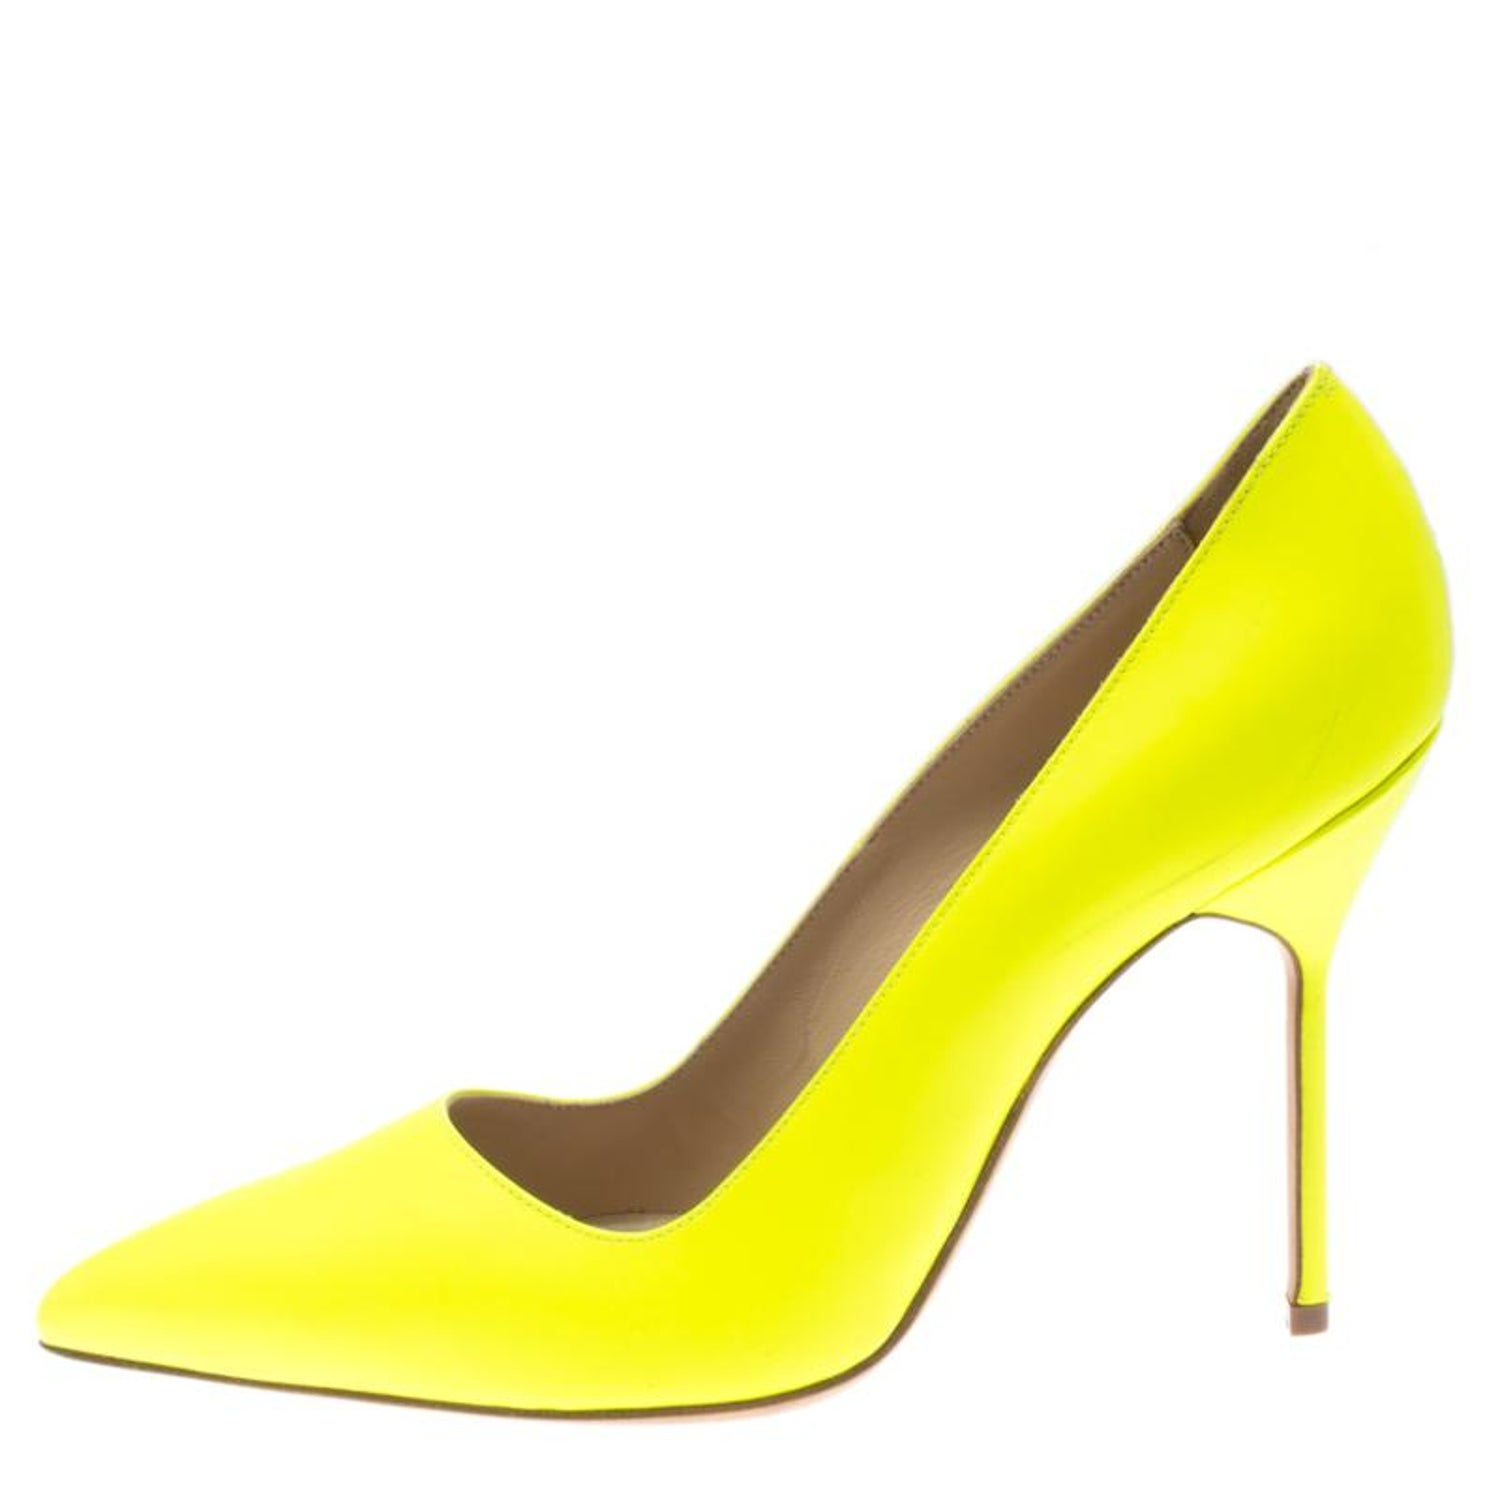 4f77acf37b2 Manolo Blahnik Neon Yellow Leather BB Pointed Toe Pumps Size 36.5